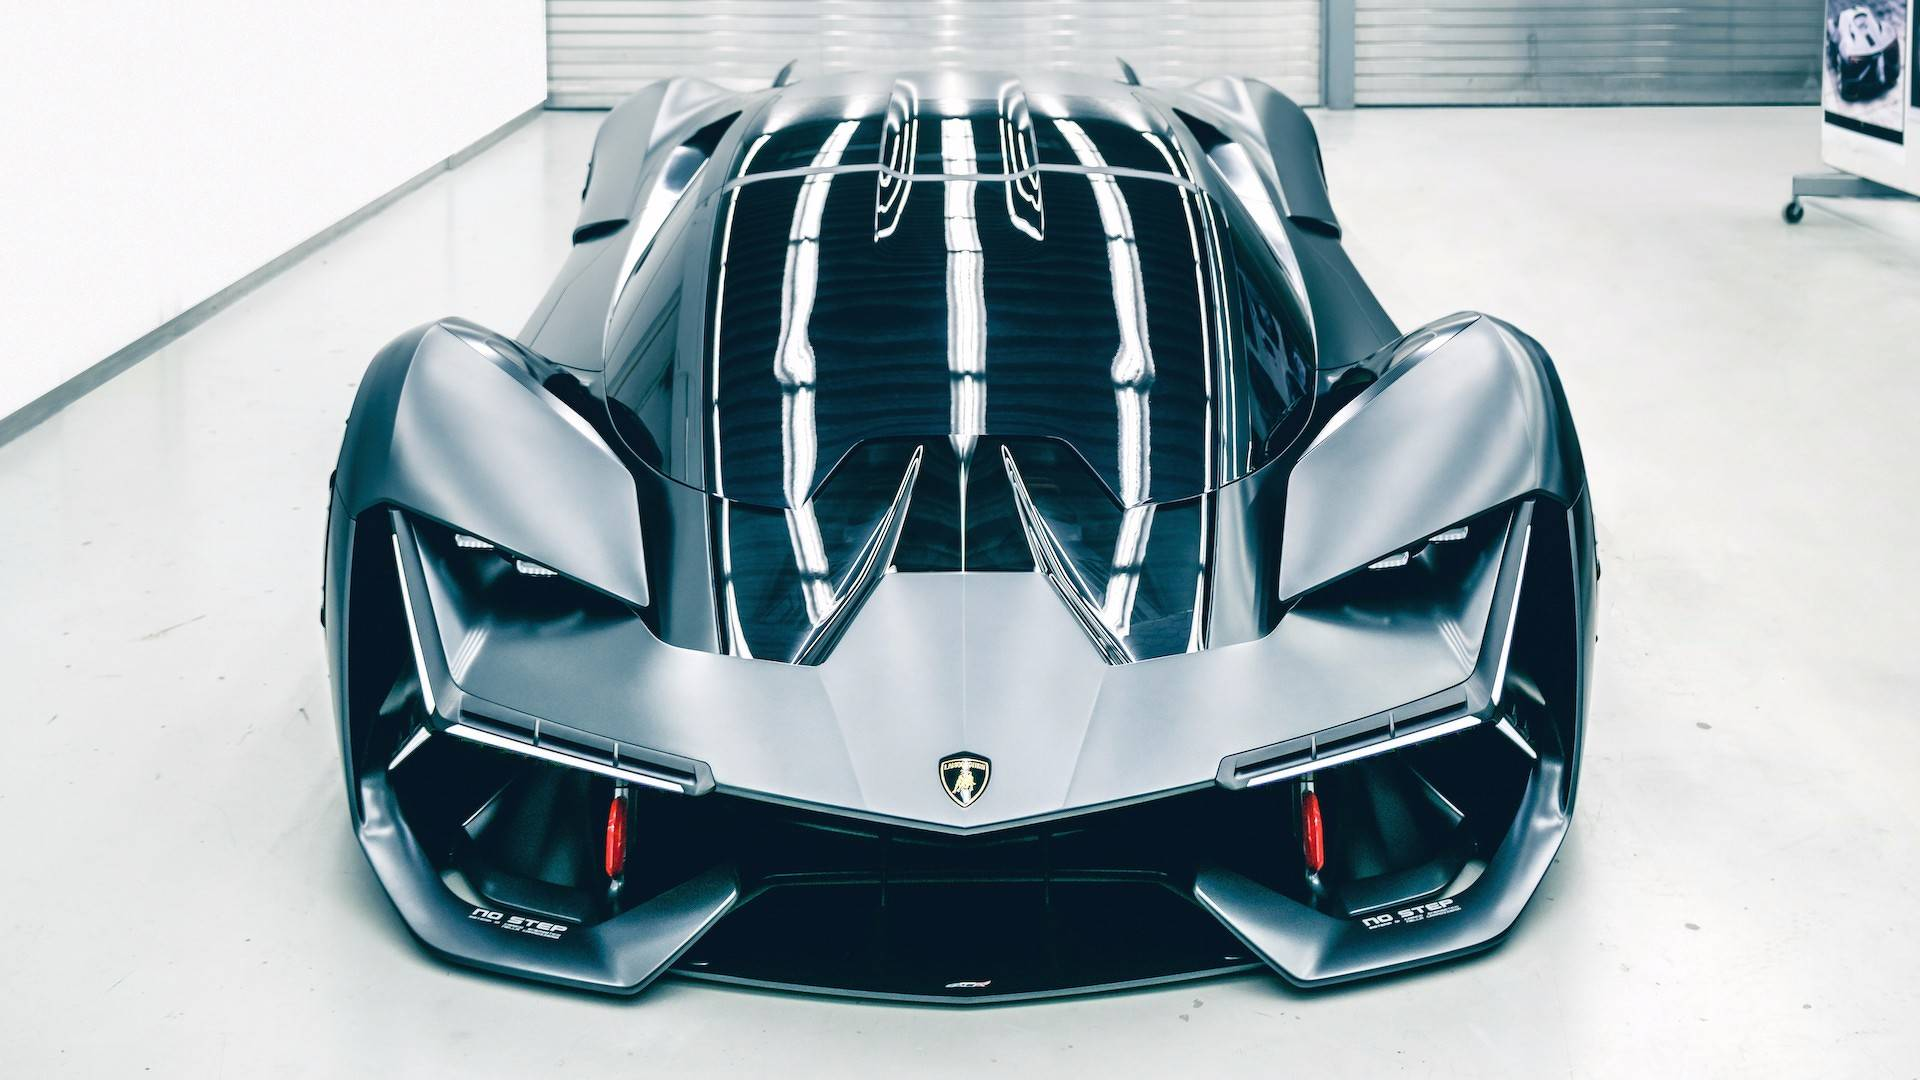 Hybrid Supercar In The Works At Lamborghini Could Pack 838 Horsepower